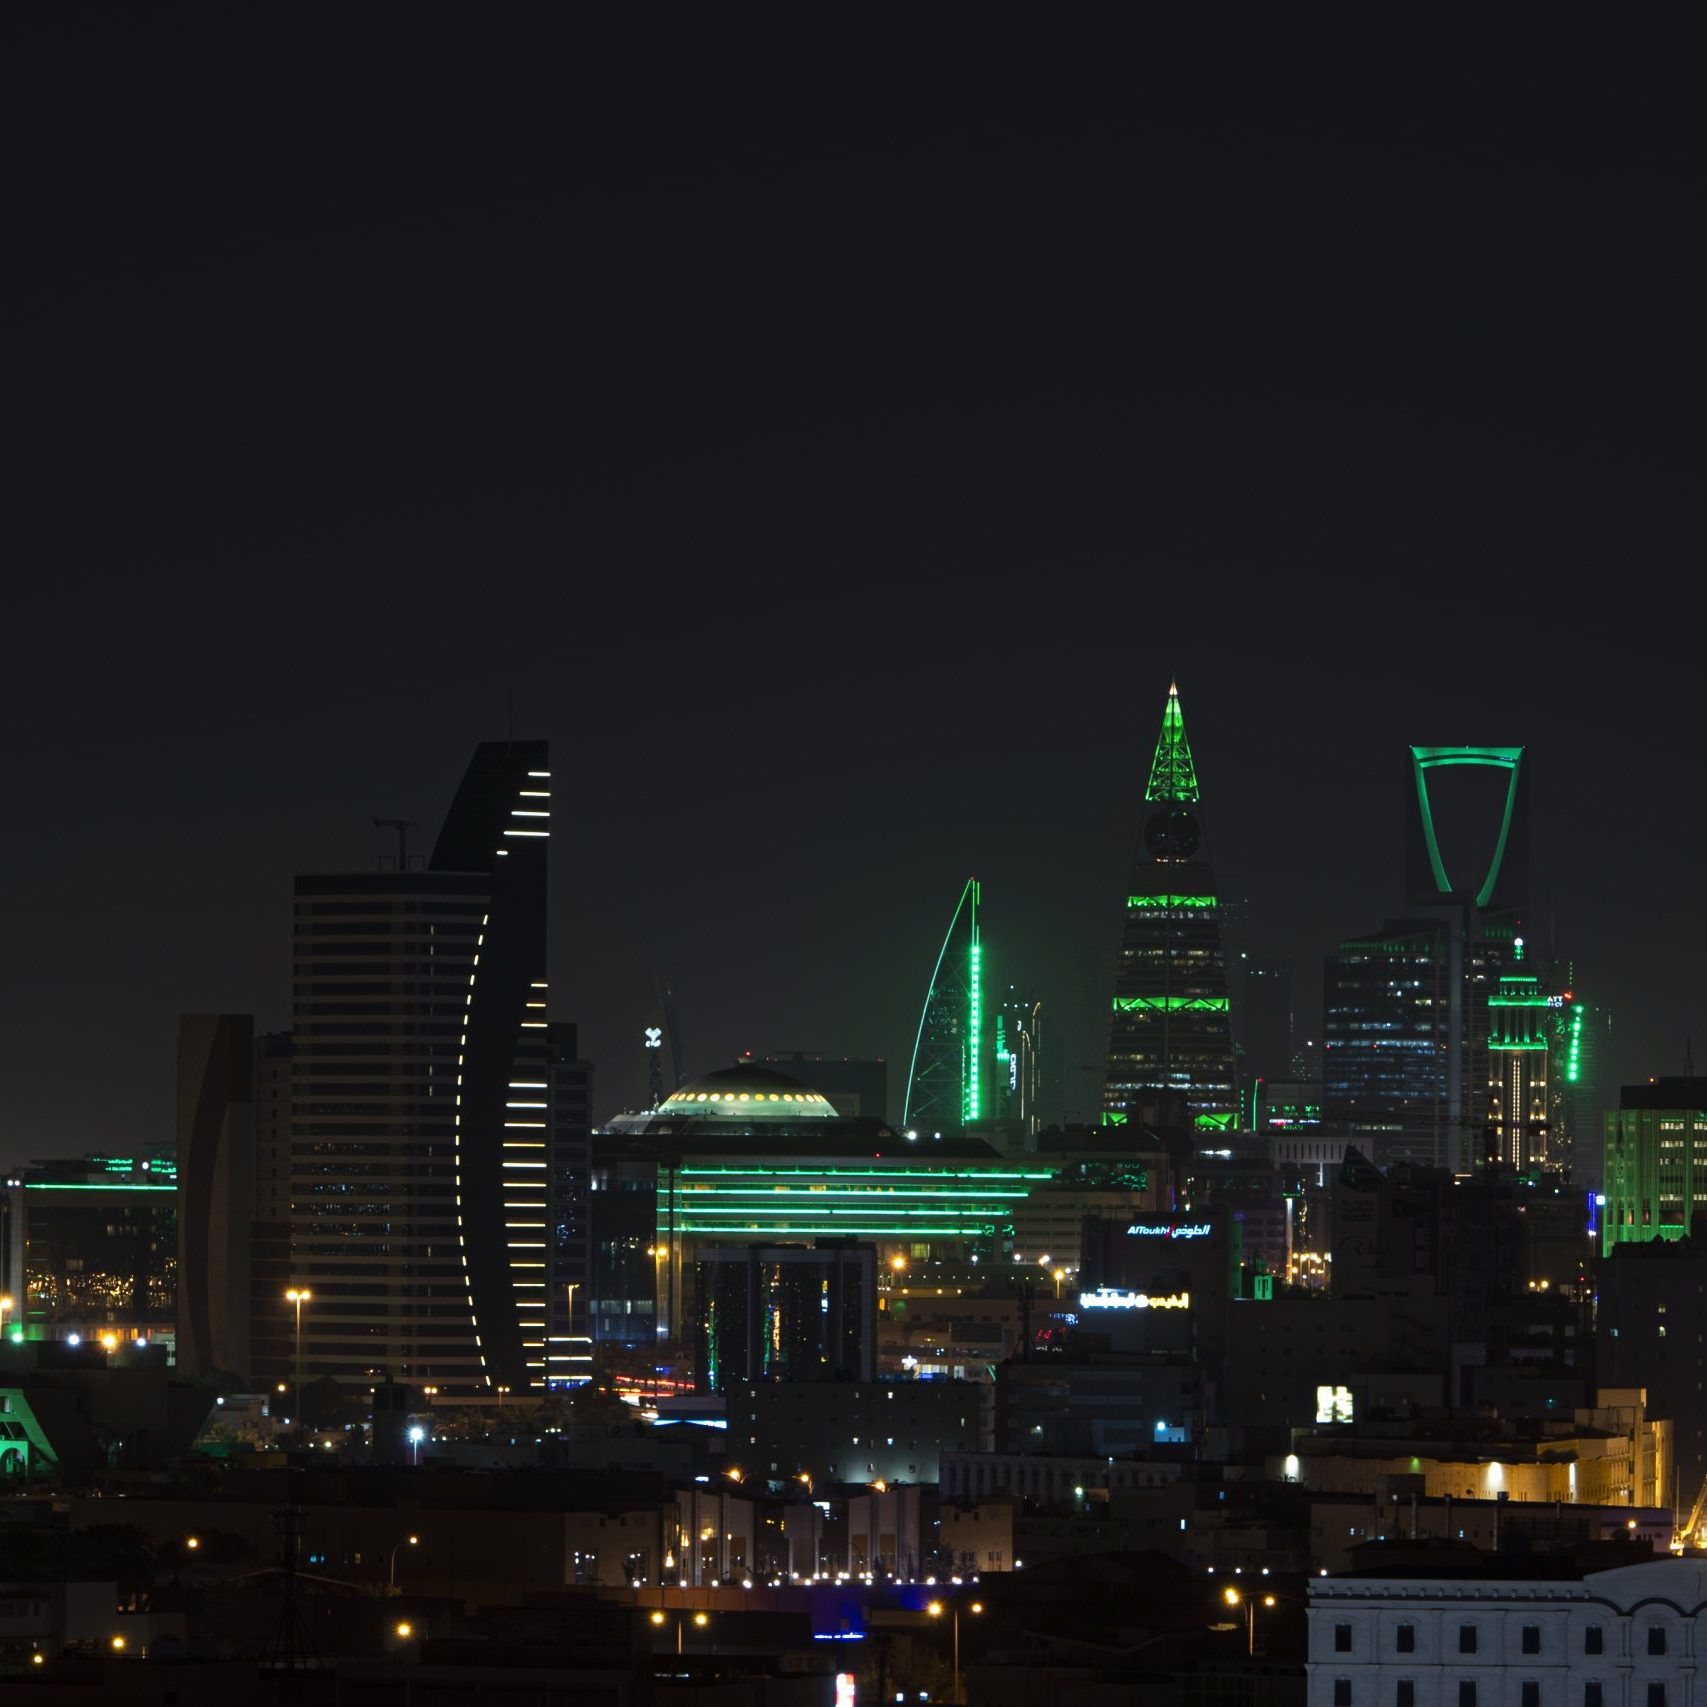 Riyadh City image